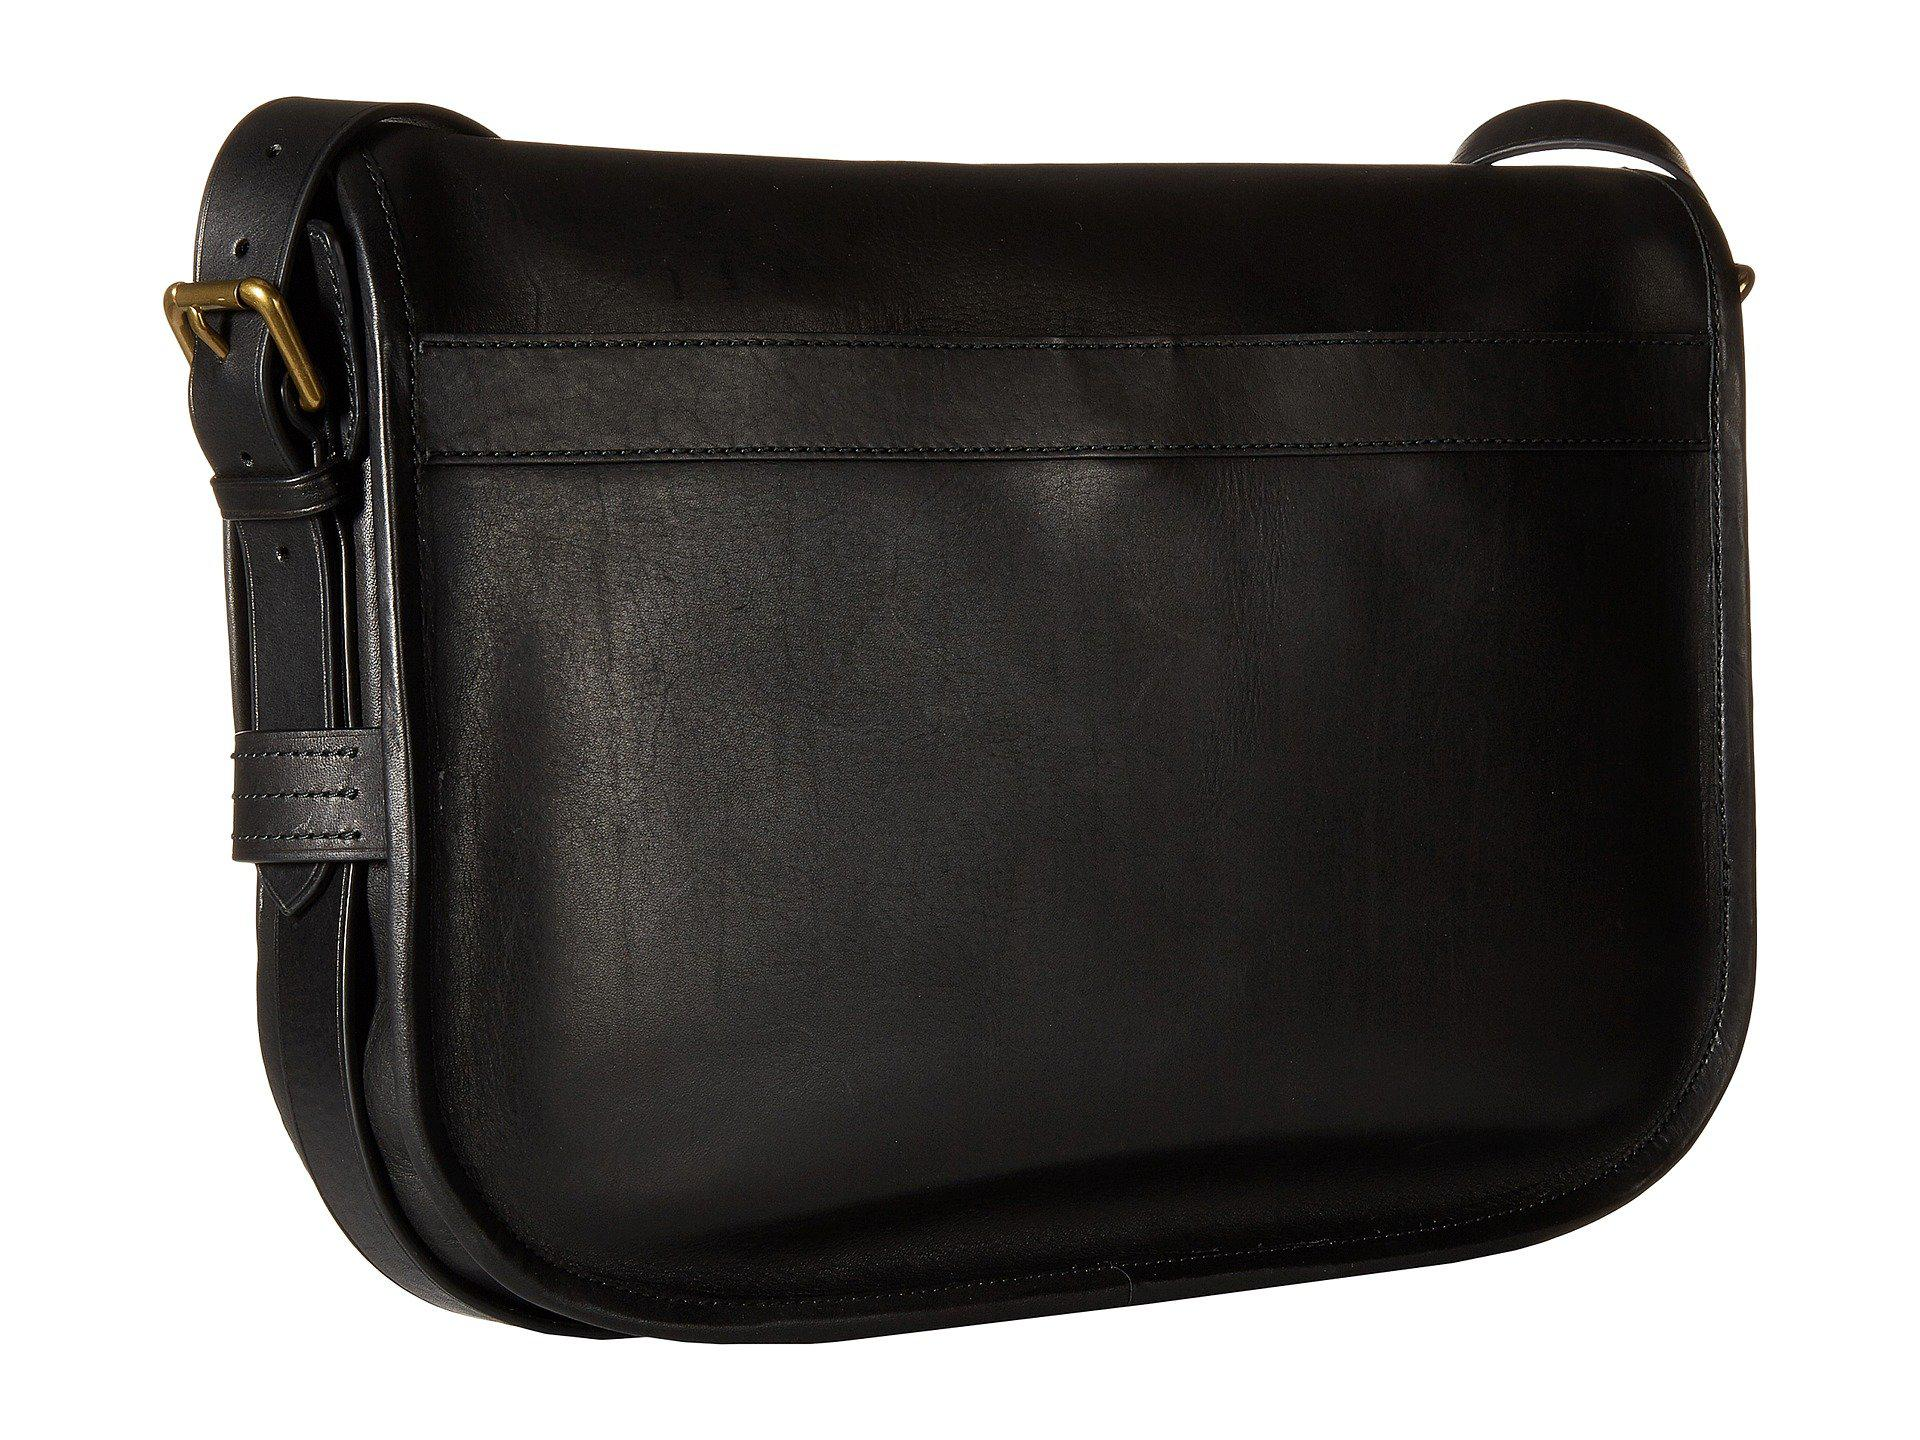 Polo Ralph Lauren - Core Leather Messenger (black) Messenger Bags for Men -  Lyst. View fullscreen 6da4c3b310d1d